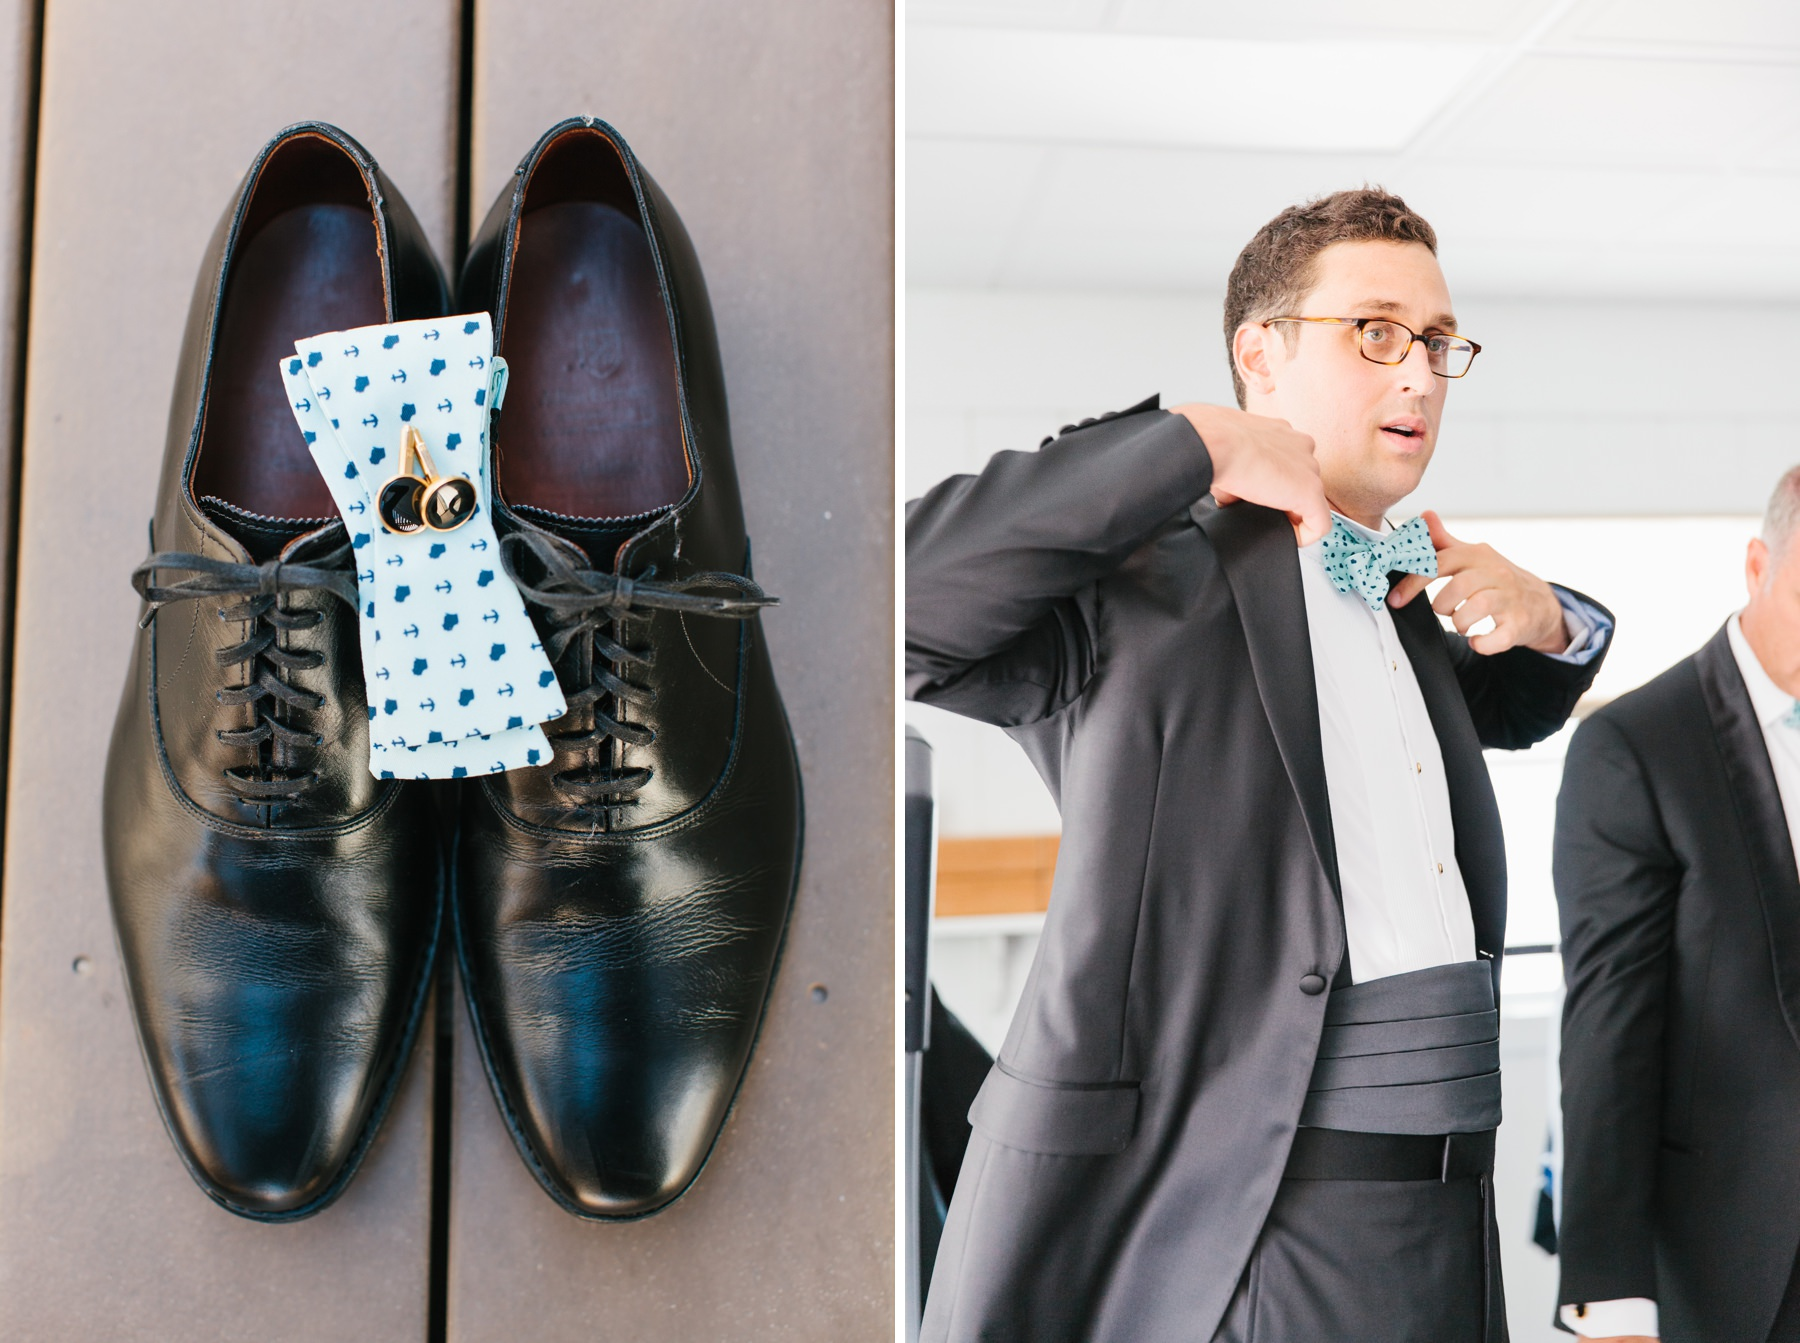 grooms shoes with bowtie, groom putting on jacket